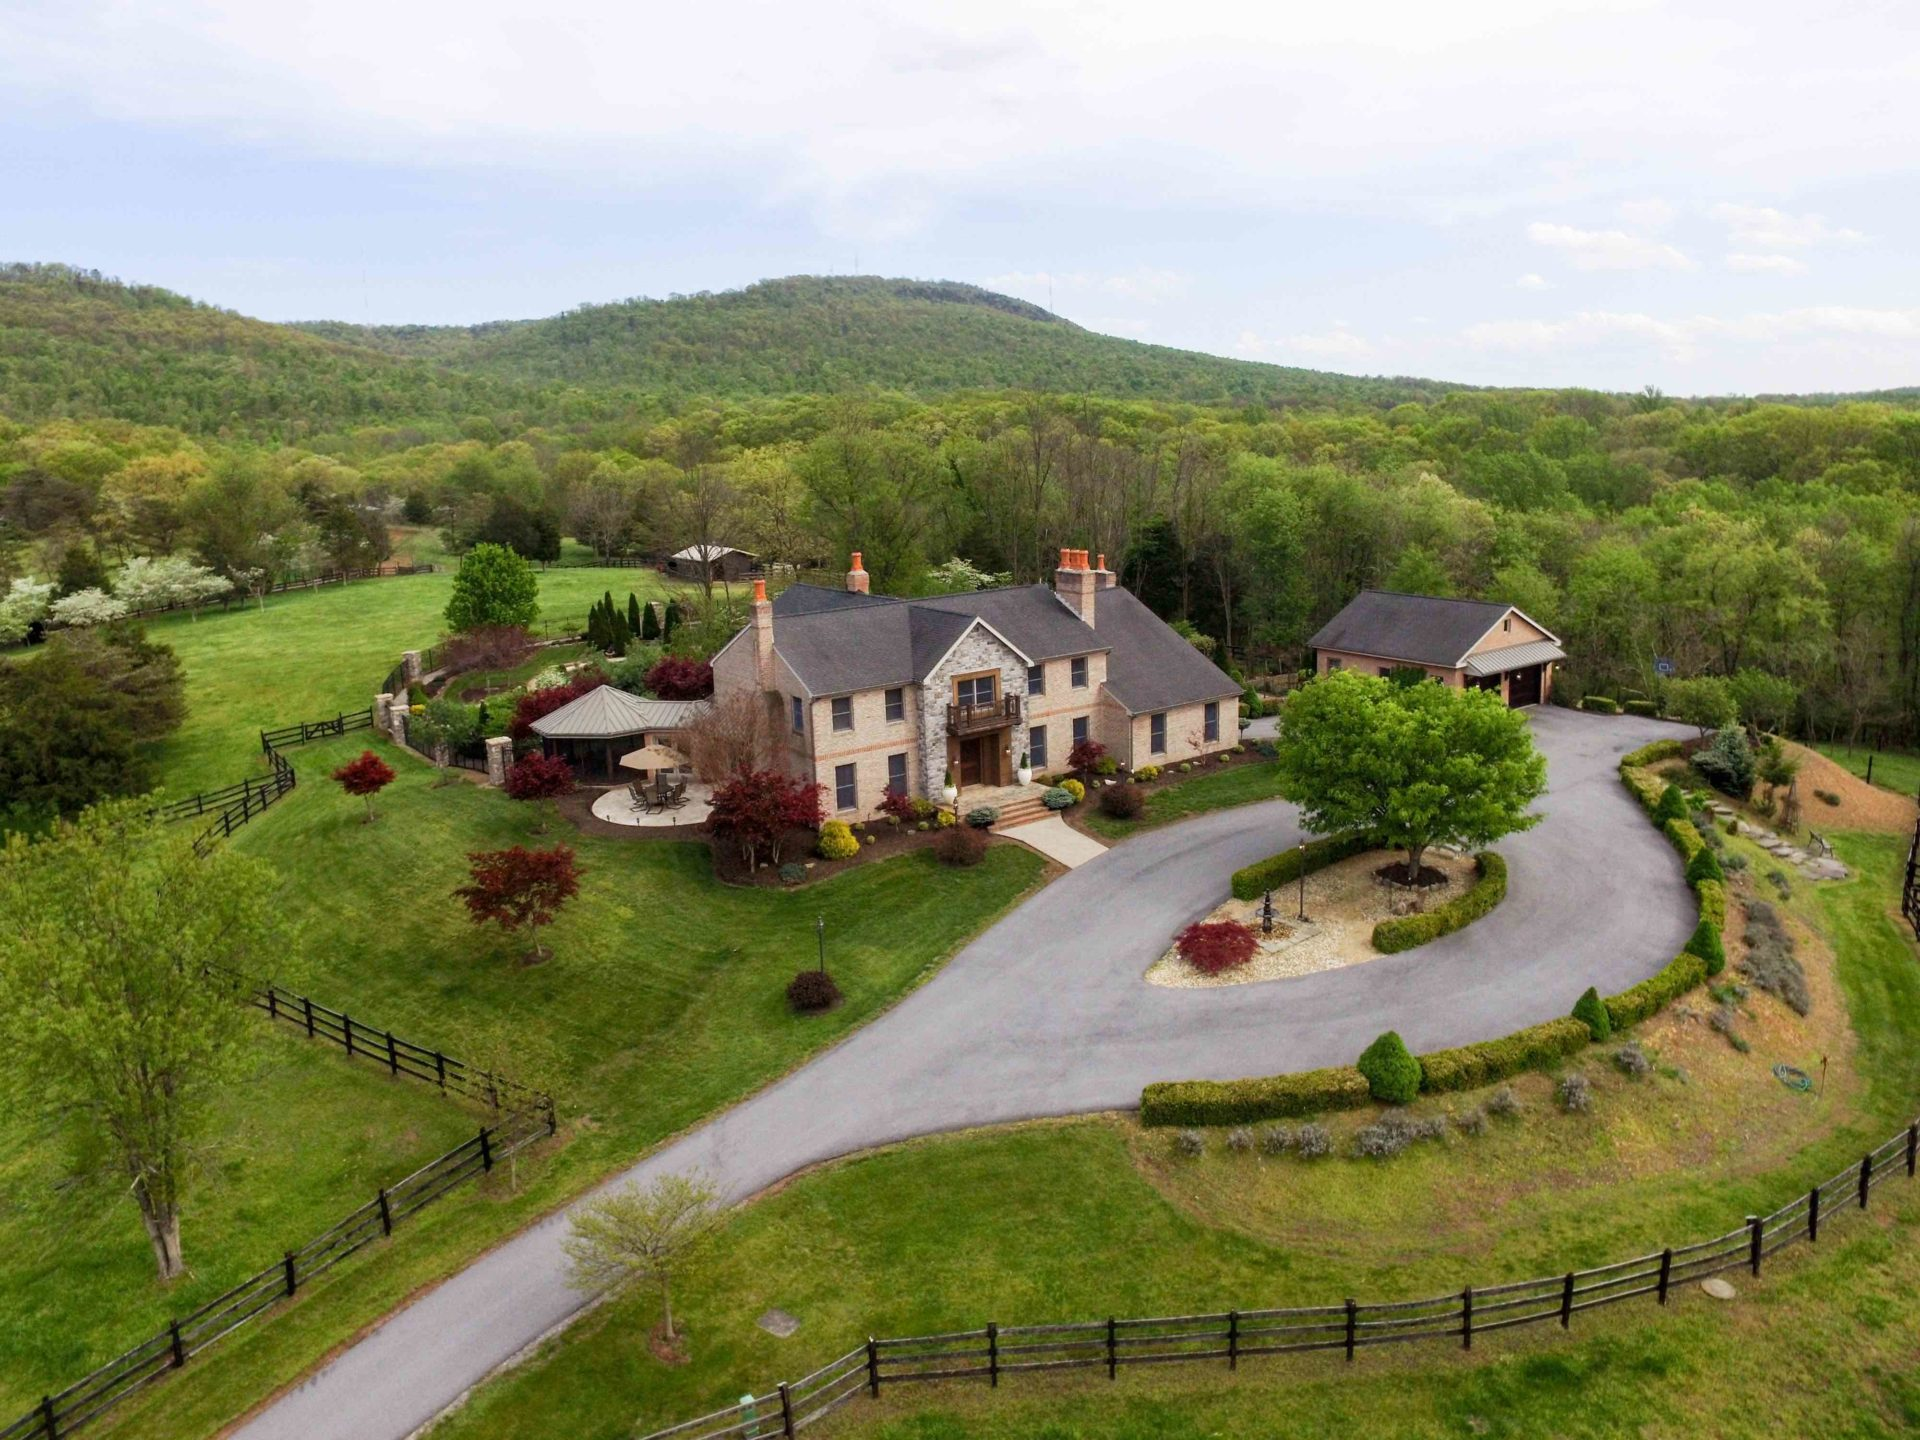 76 Acre Maryland Horse Farm Property For Sale Supreme Auctions